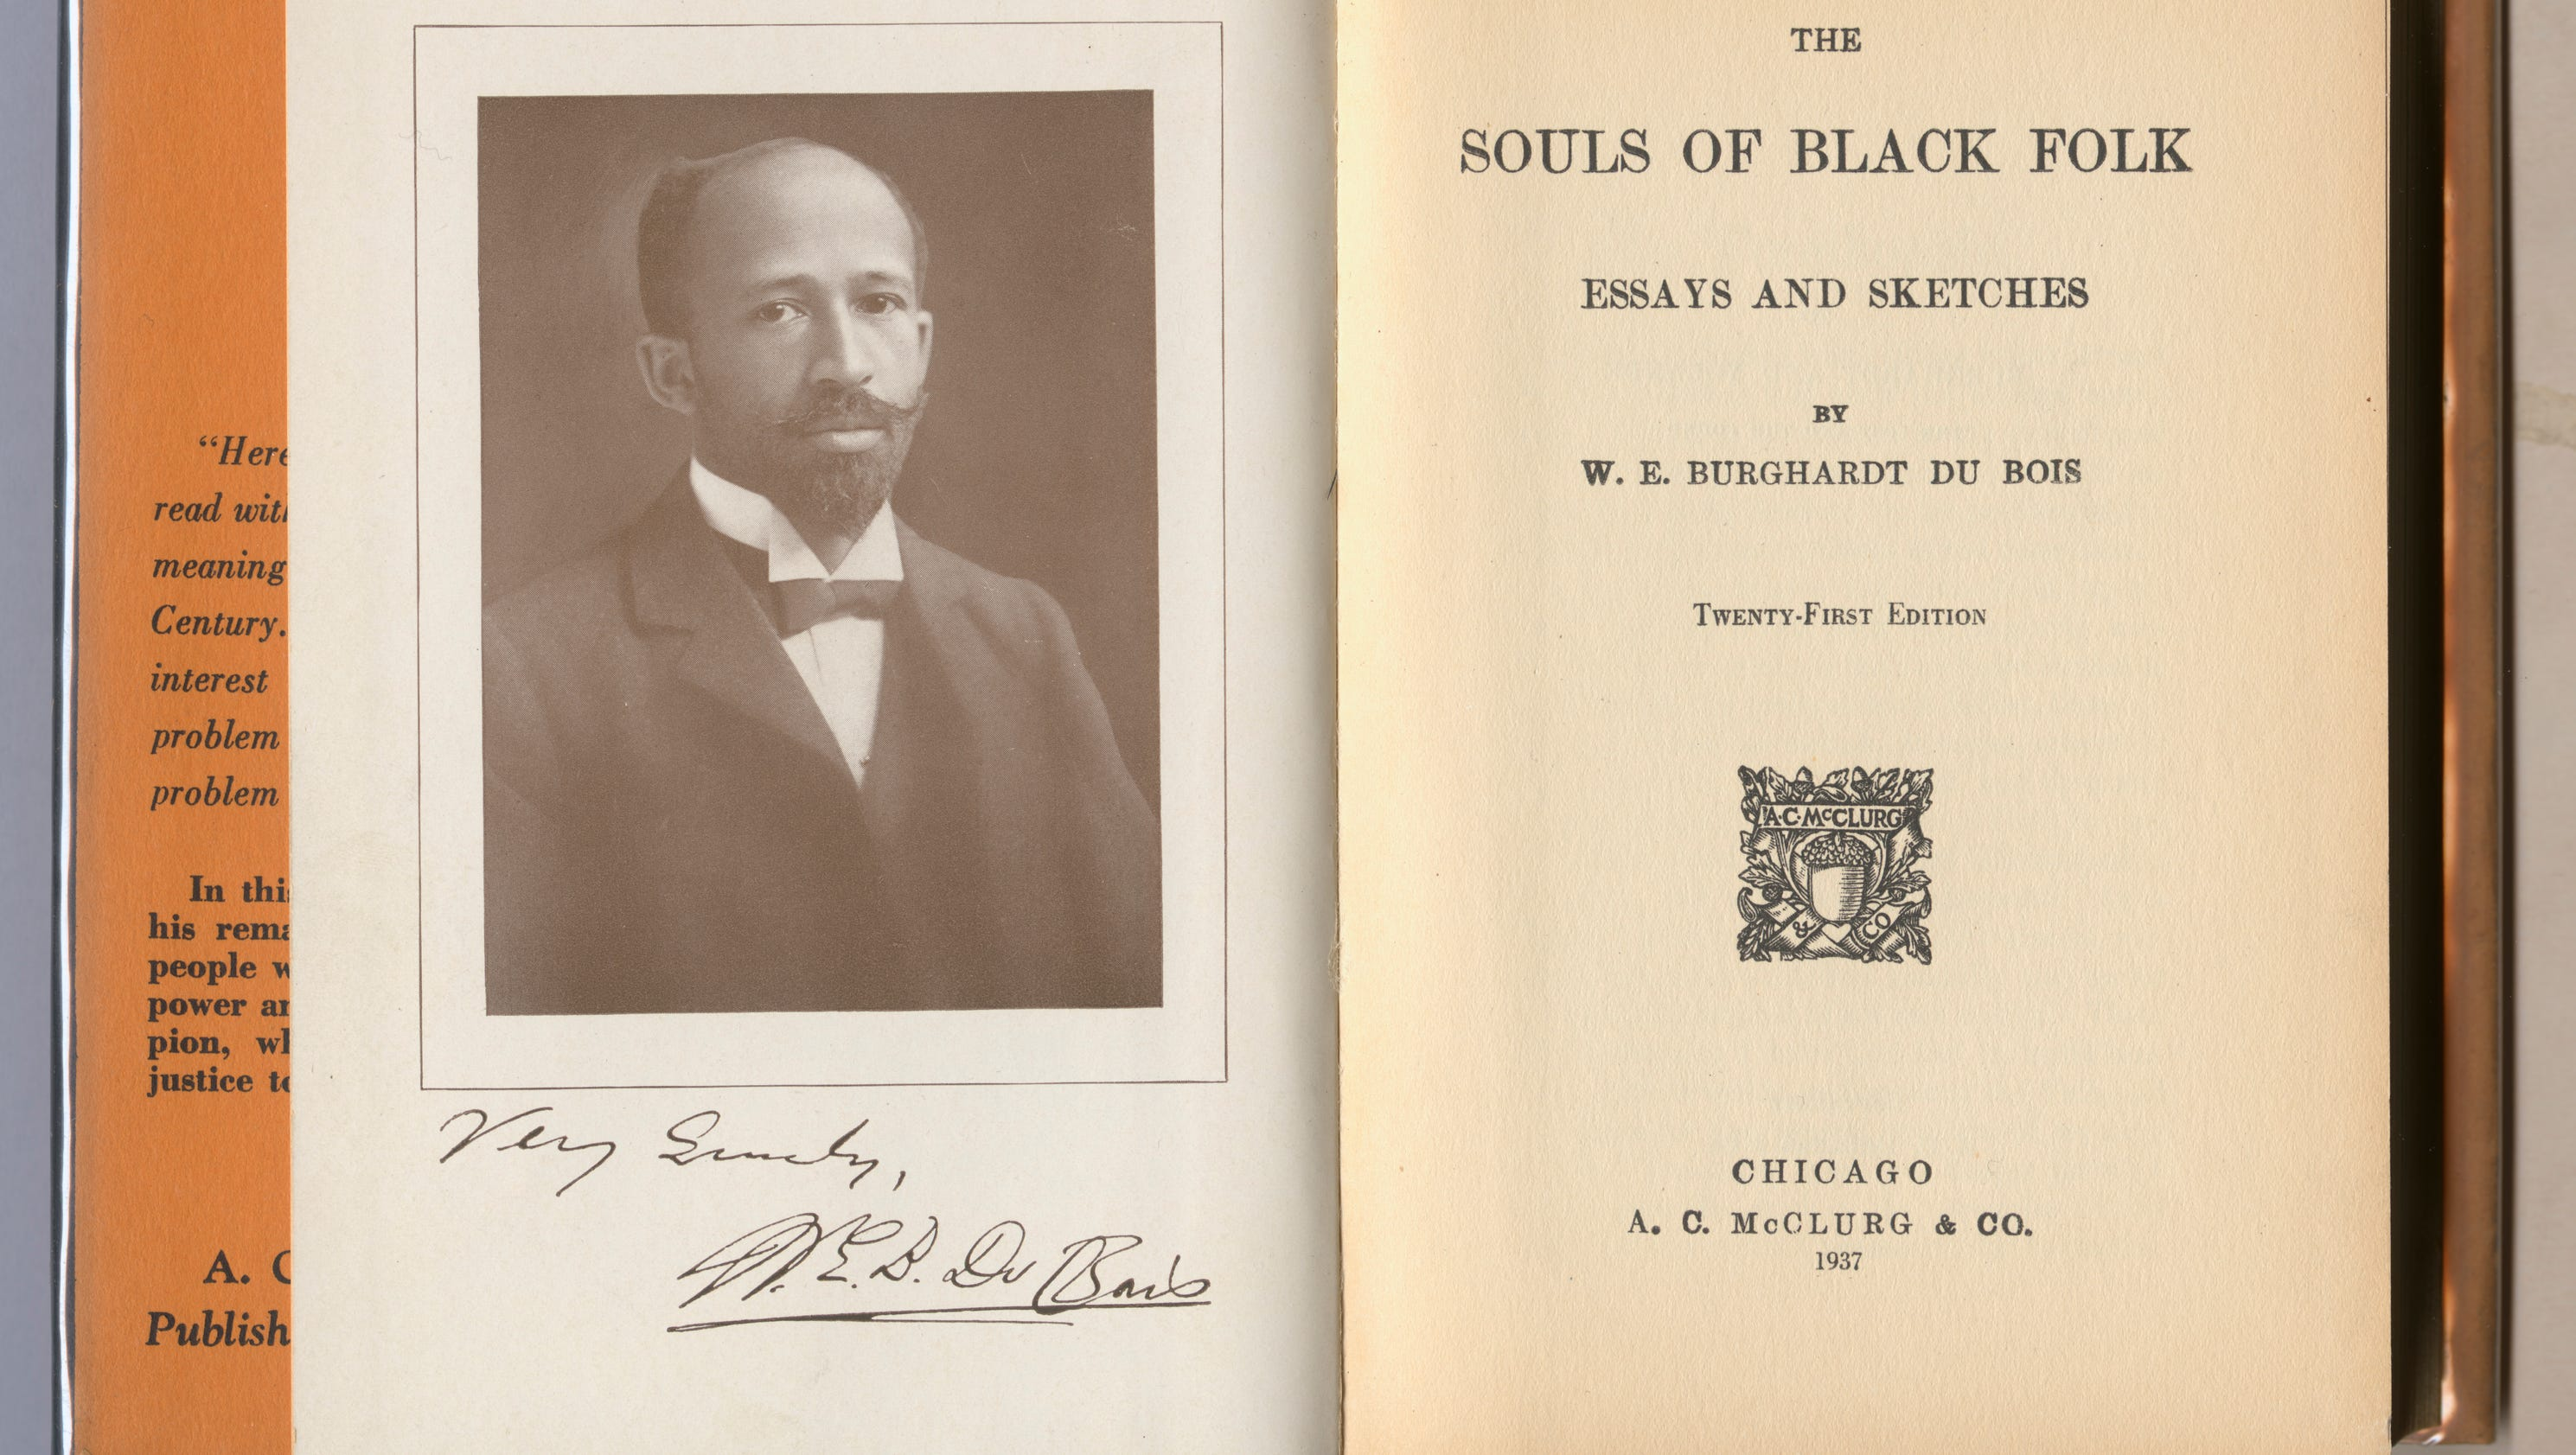 web du bois characterization of black religion Web du bois was an important figure in the development of african-american education and the philosophy of the 20th web du bois and the rise of black education.